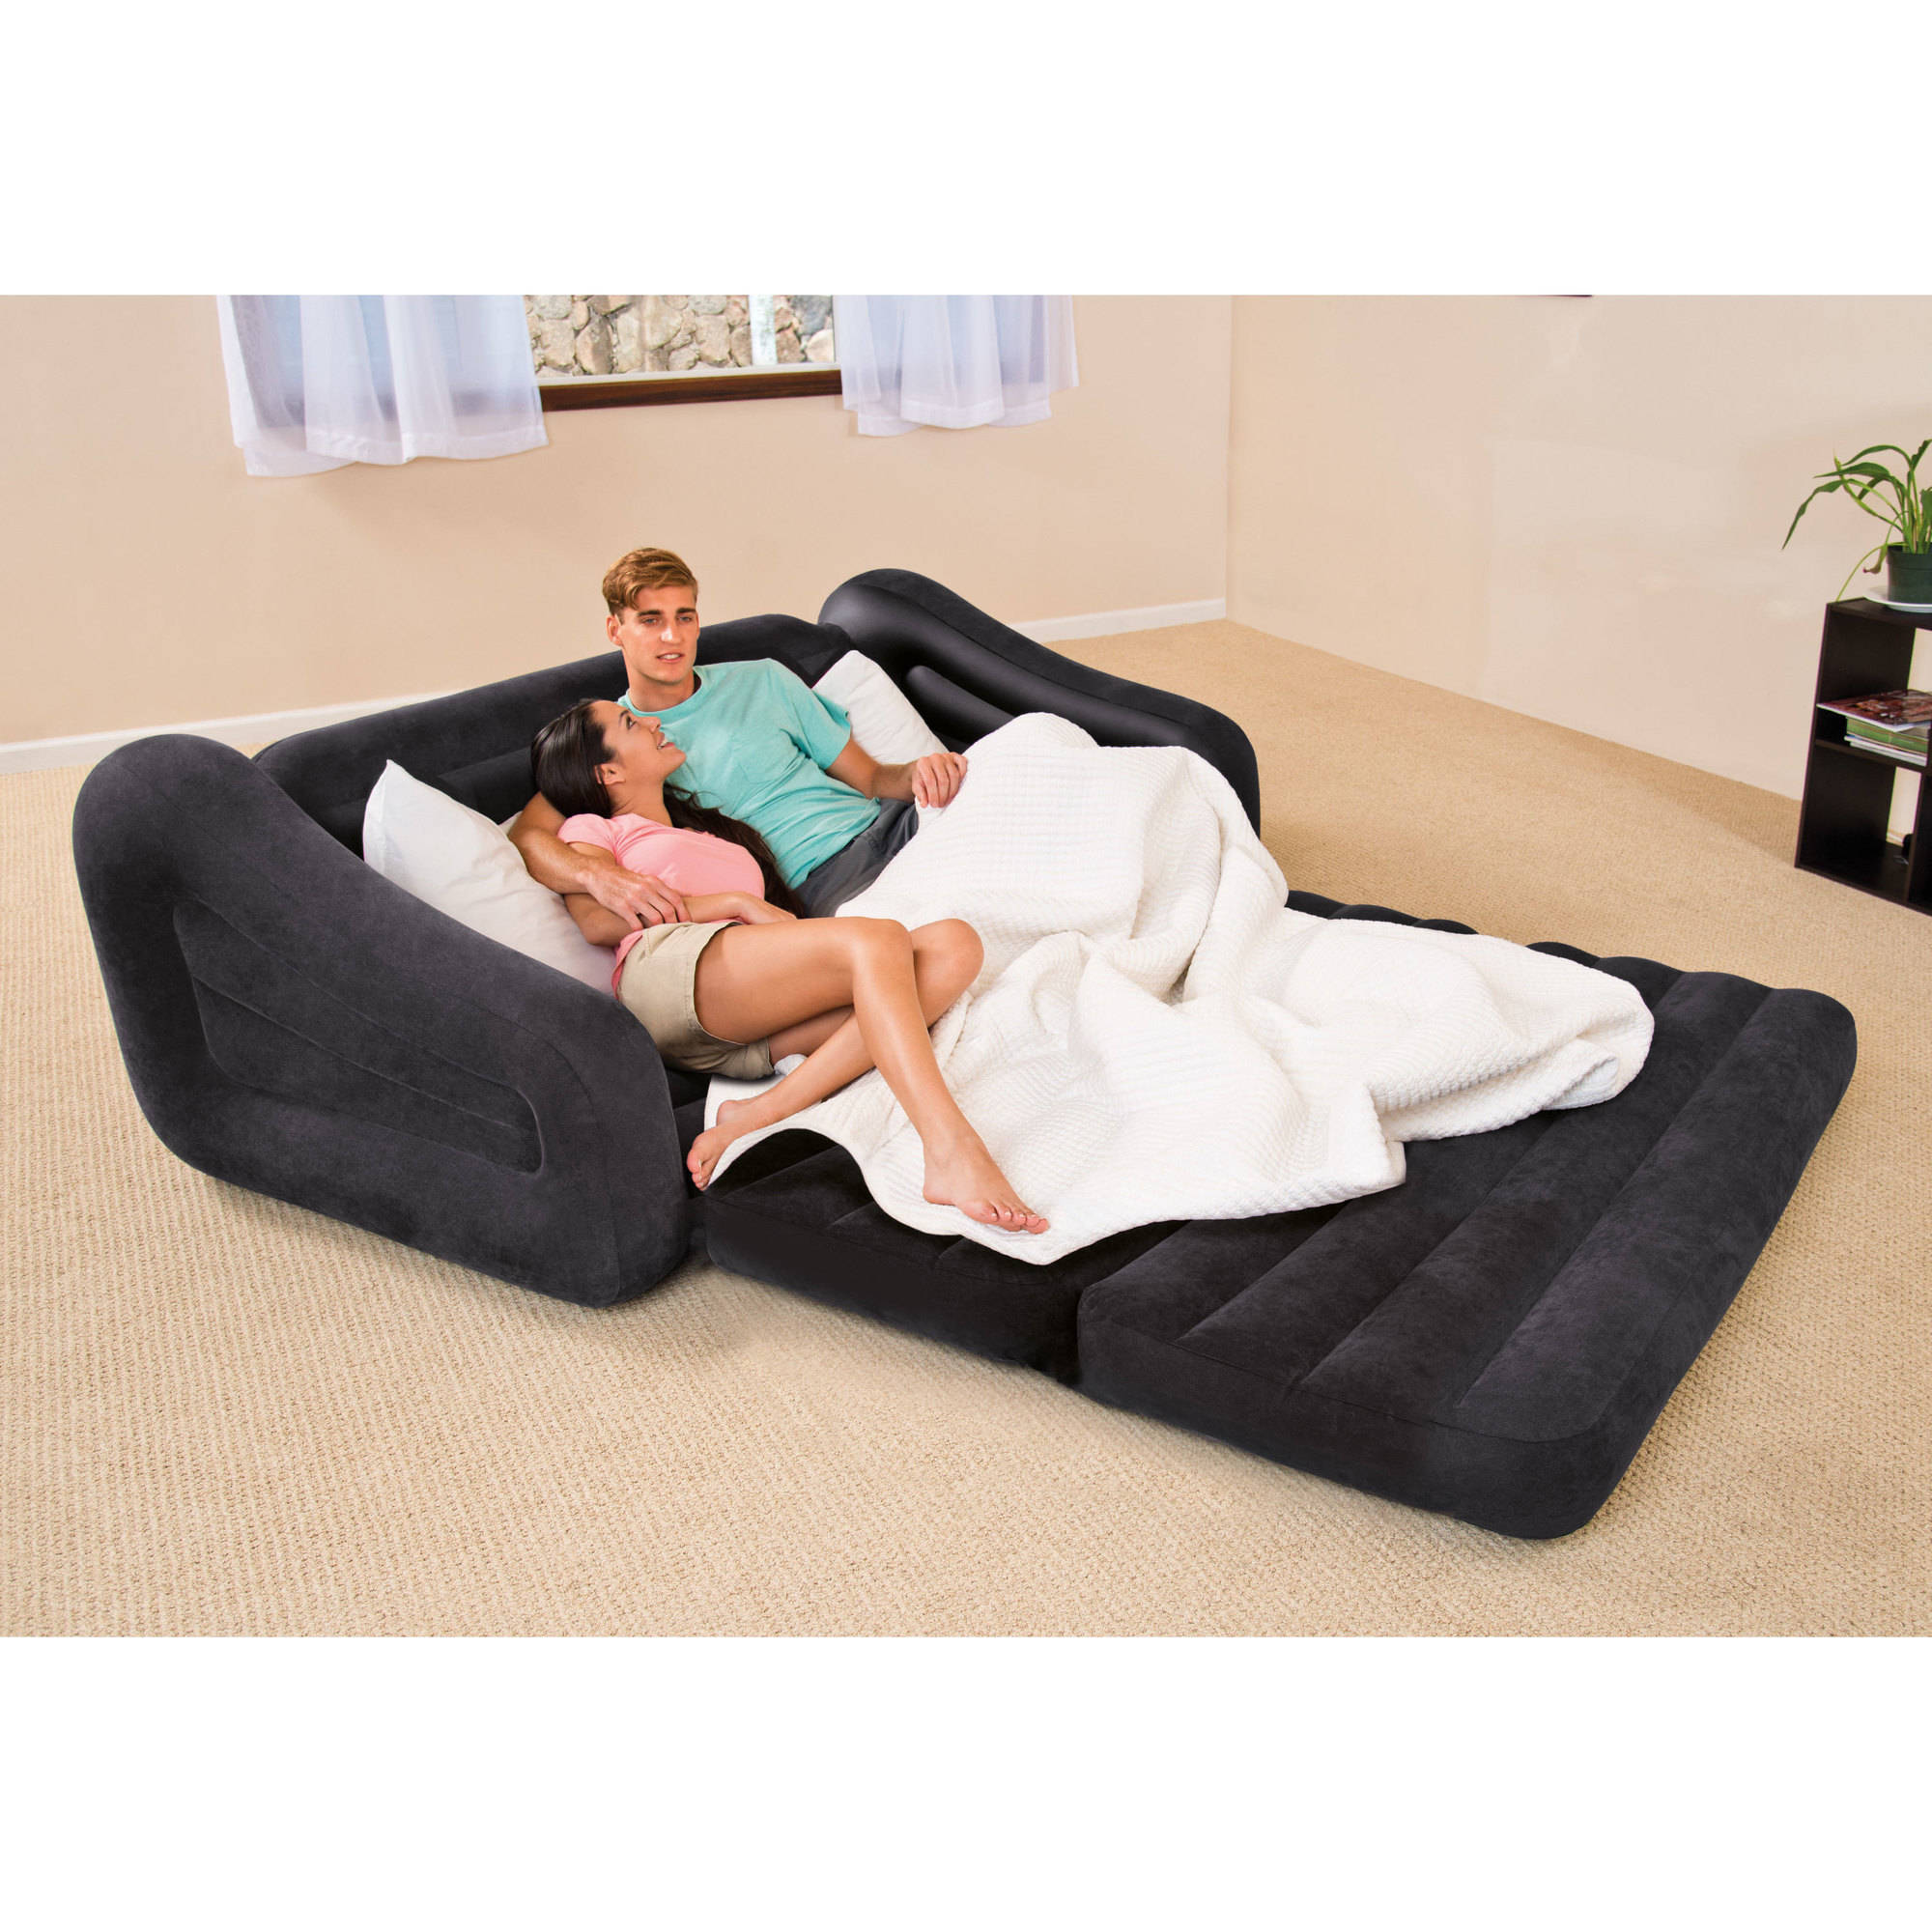 Retro Inflatable Sofa Intex Queen Inflatable Pull Out Sofa Bed 1 Each Walmart